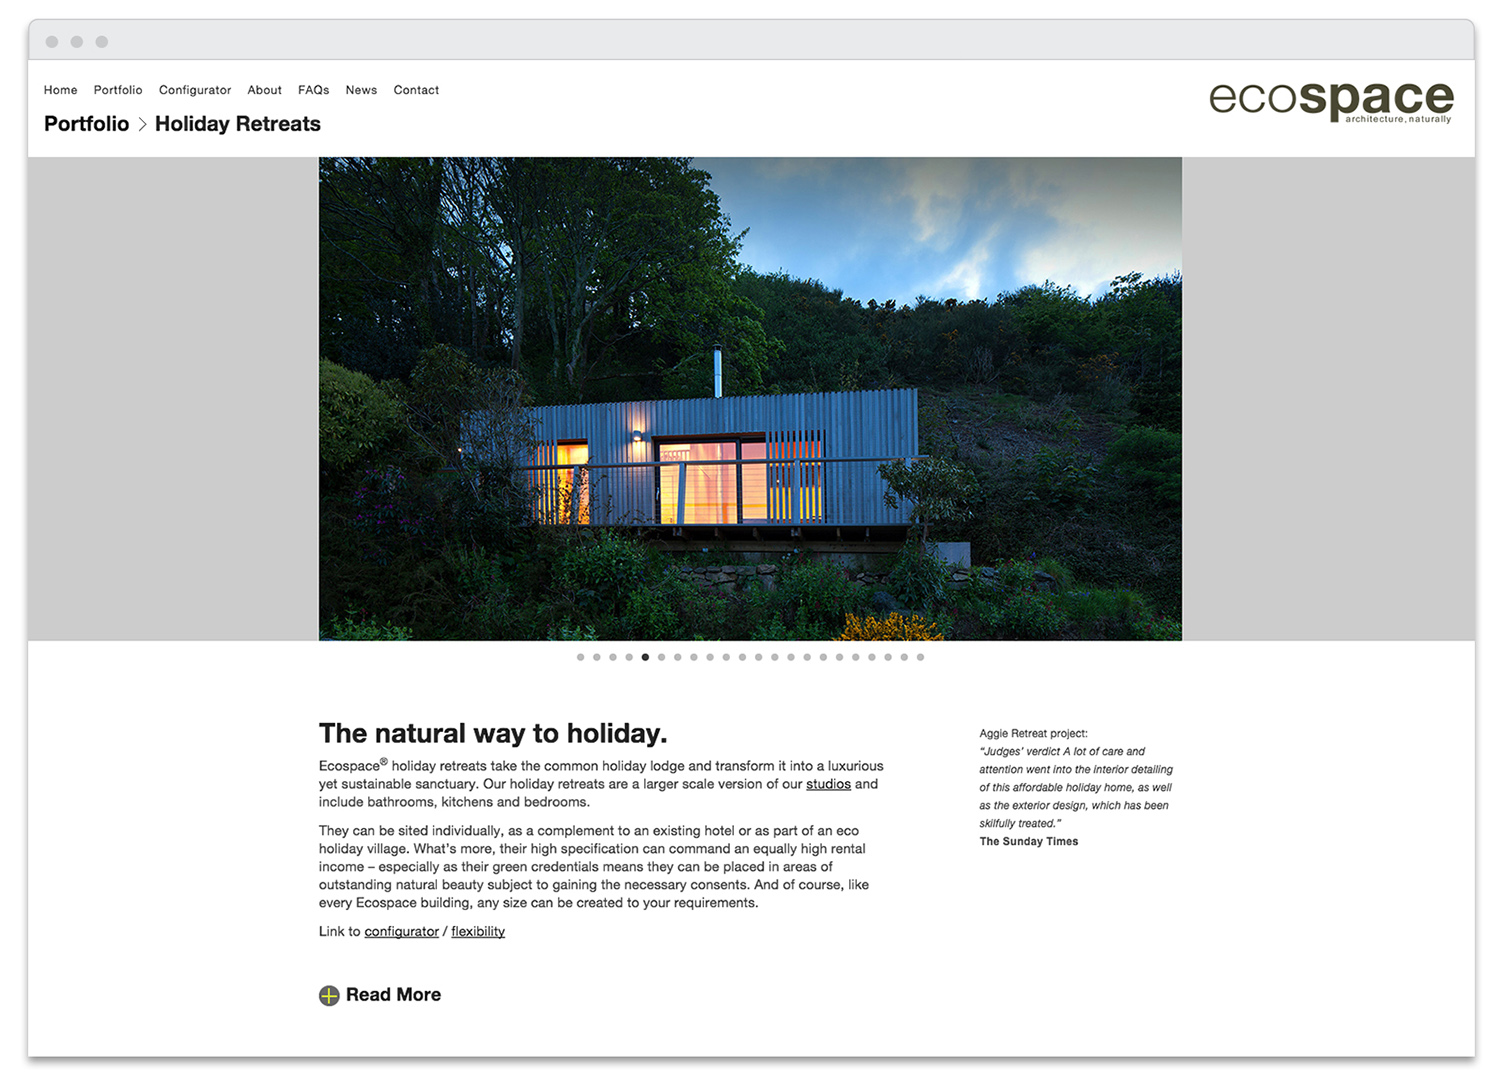 Ecospace-Browser-holiday